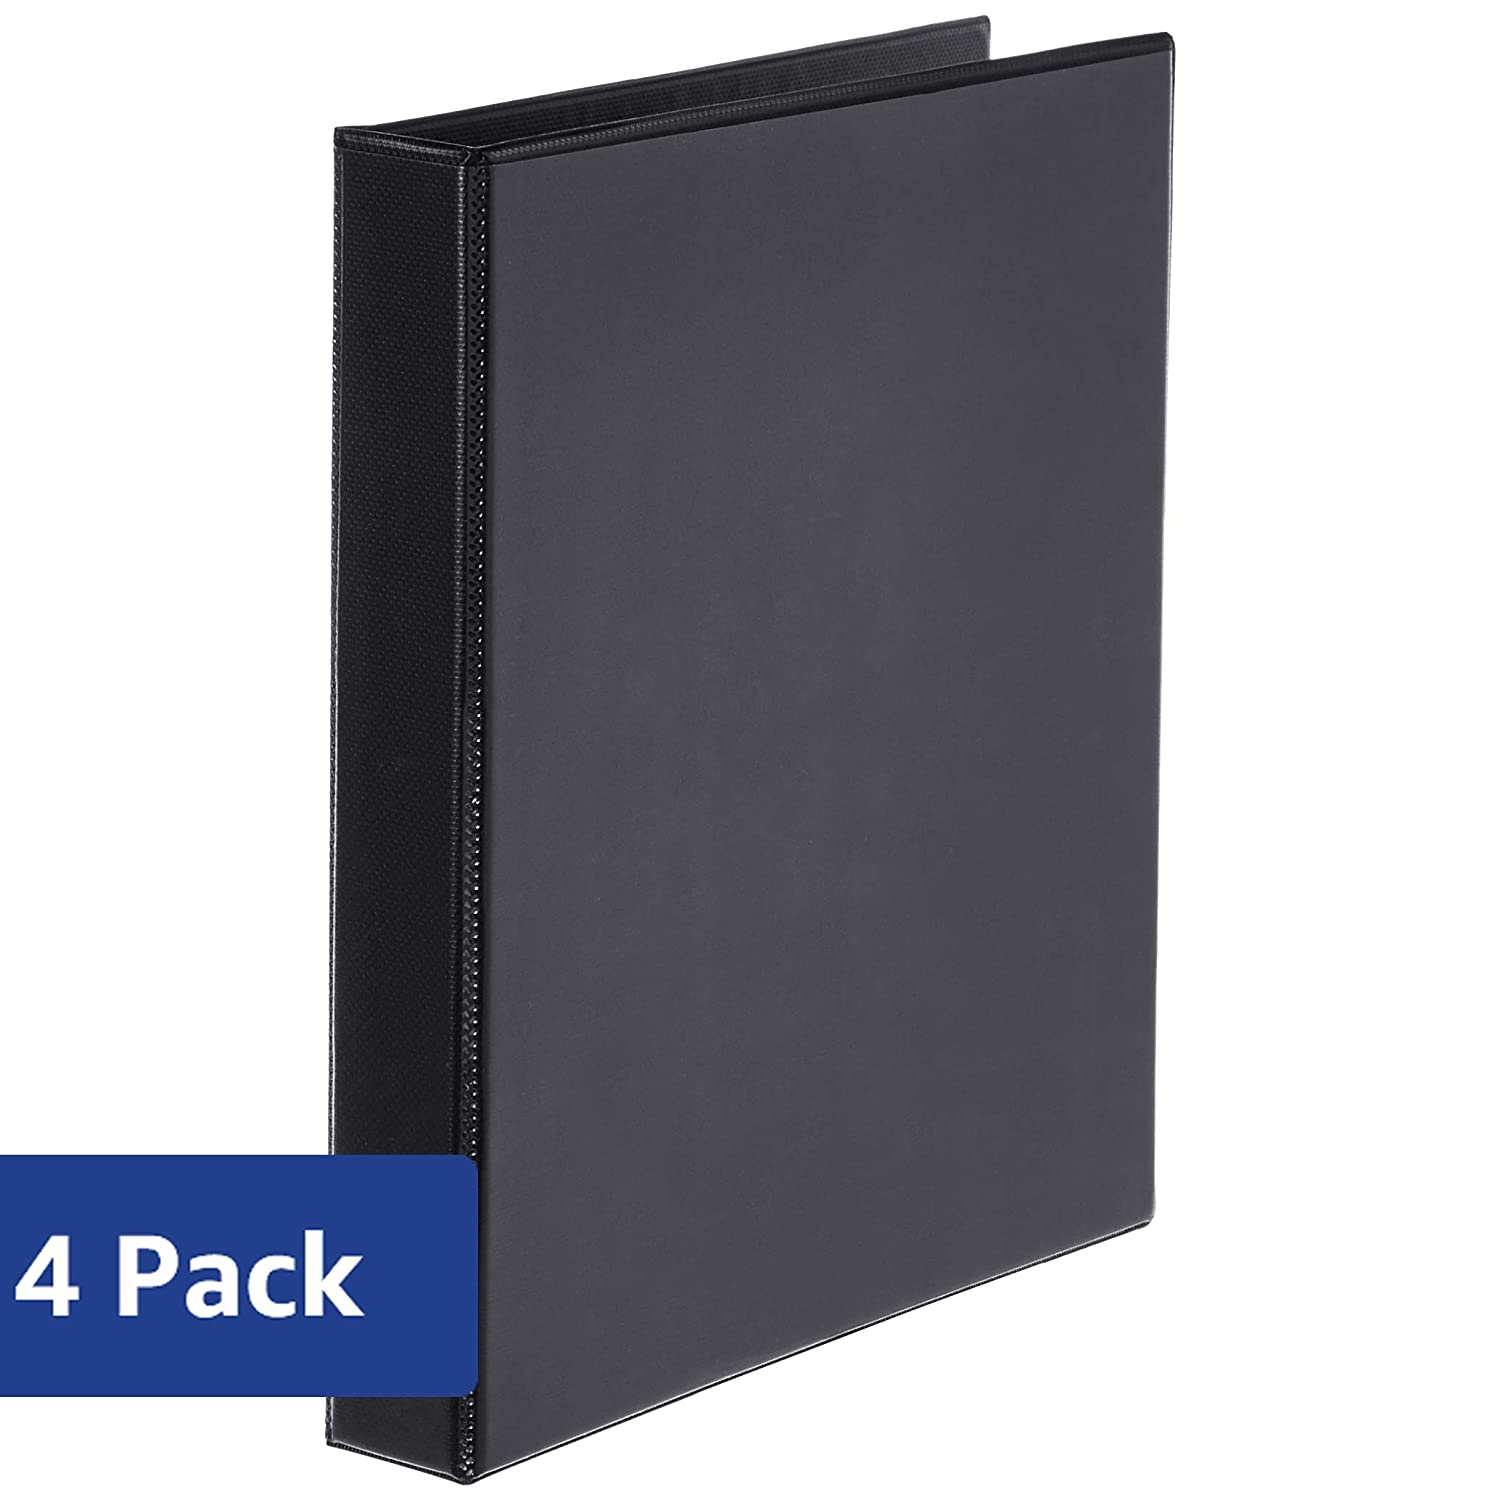 Basics Heavy-Duty D-Ring Binder - 1', Black, 4-Pack AMZ86611